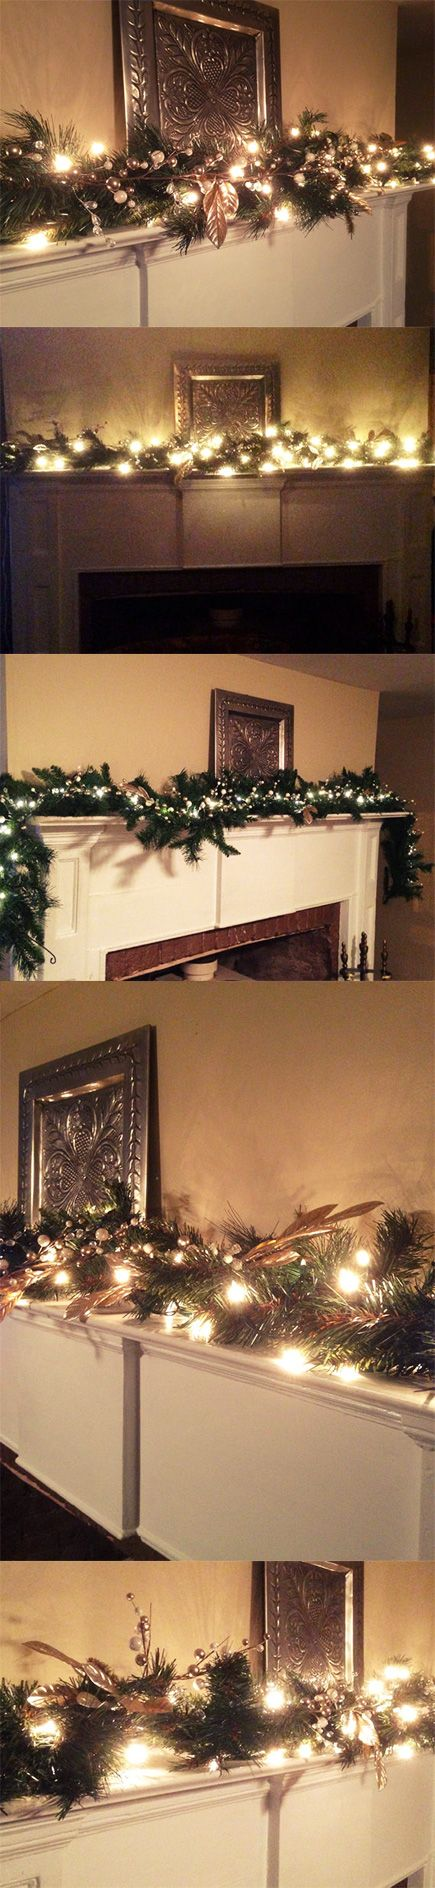 Christmas Garland, White & Silver Berries, Silver Leaf Garland, Mantle Garland with Lights, Christmas Decor, Fireplace Swag, Doorway Garland $45.00+